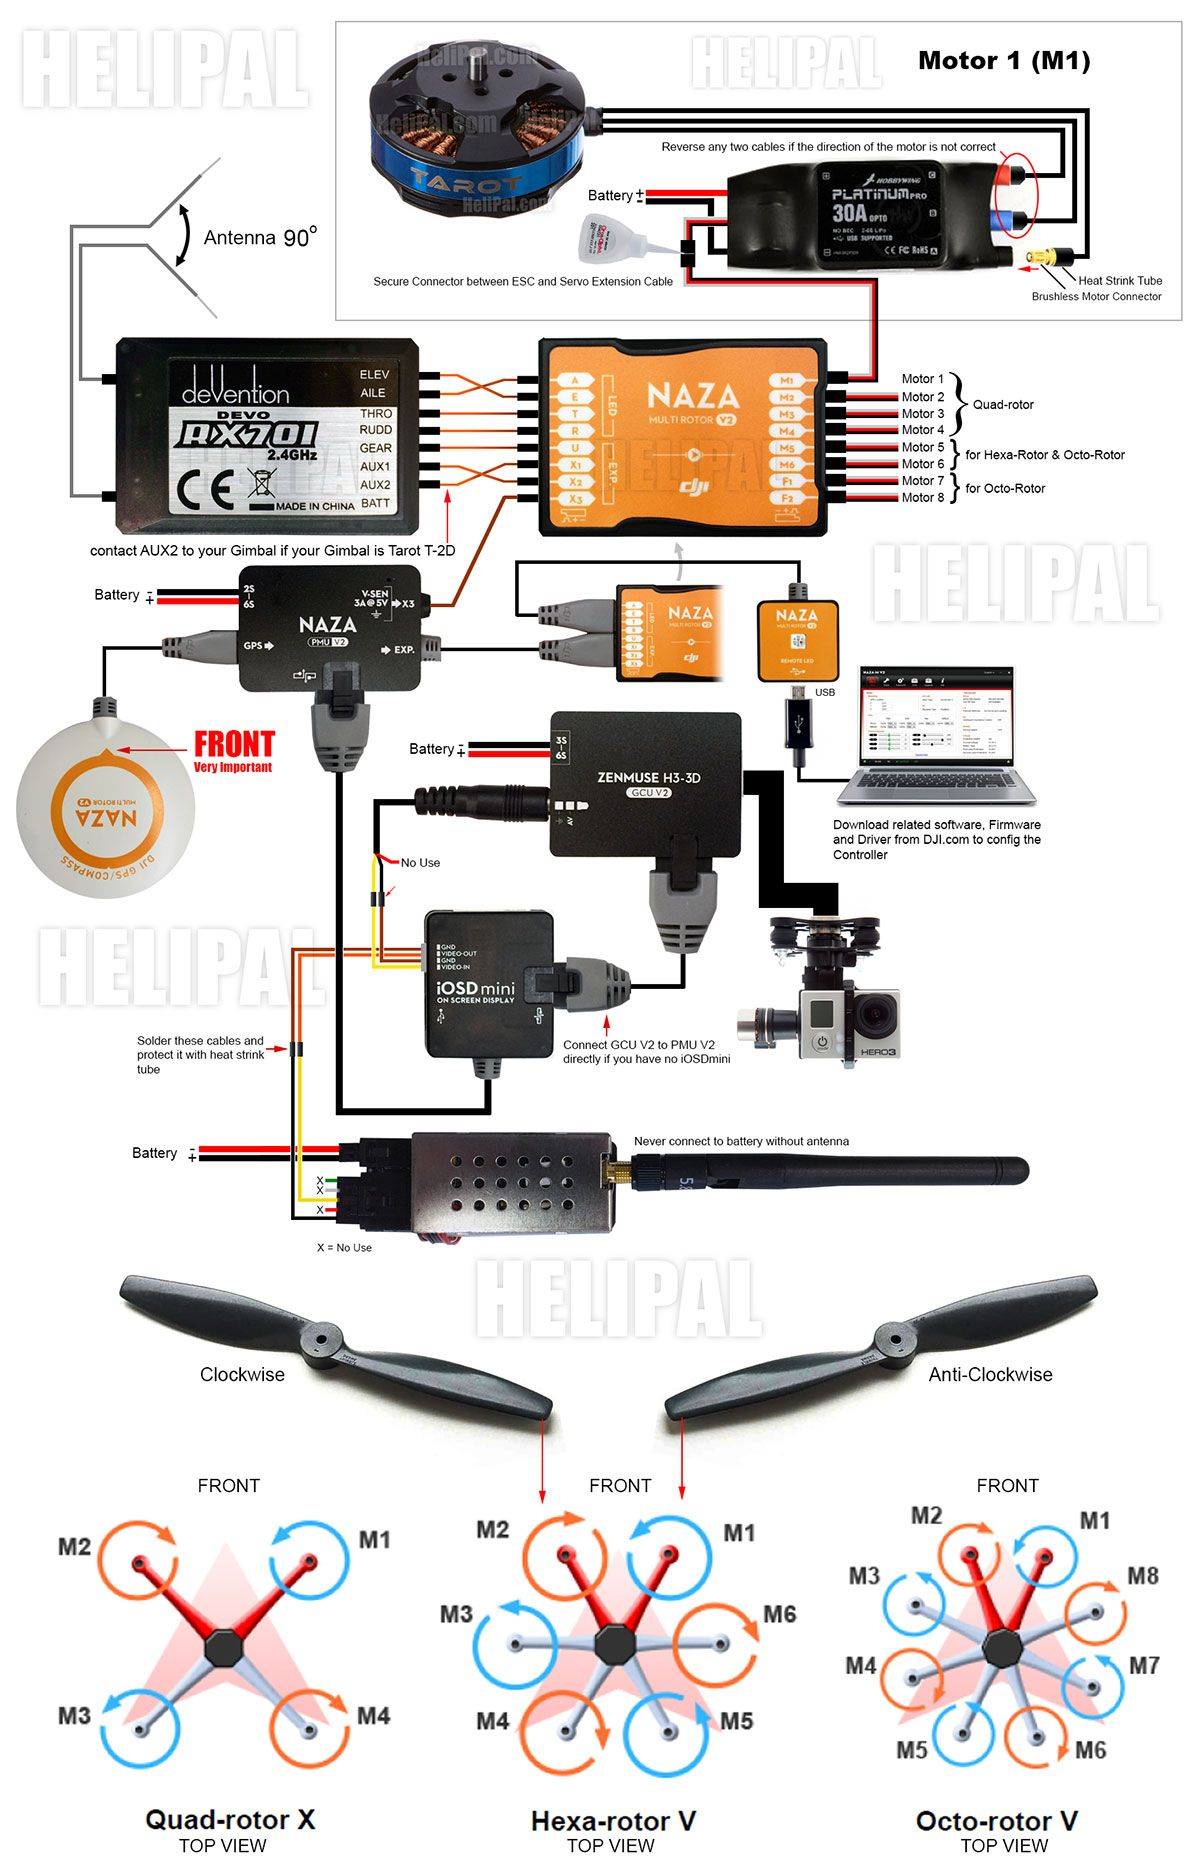 47e6d2b4d9f6fcd2266d3d10d9cddcee pack tarot hardware diagram 01 big jpg (1200�1869) quadcopter naza lite wiring diagram at cos-gaming.co